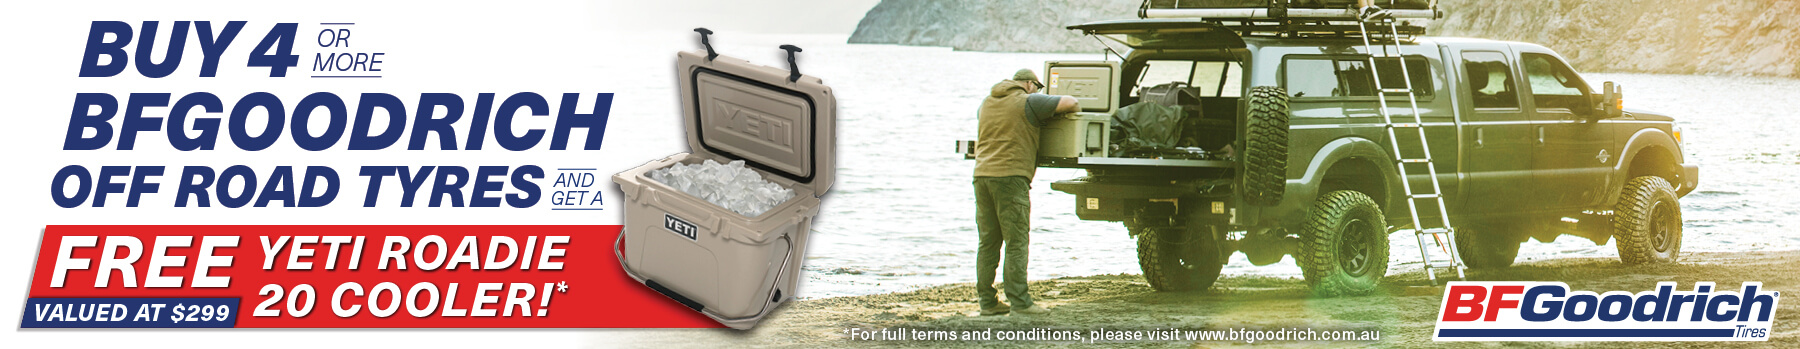 Buy 4 of more BFGoodrich off road tyres and get a FREE Yeti Roadie 20 cooler valued at $299!